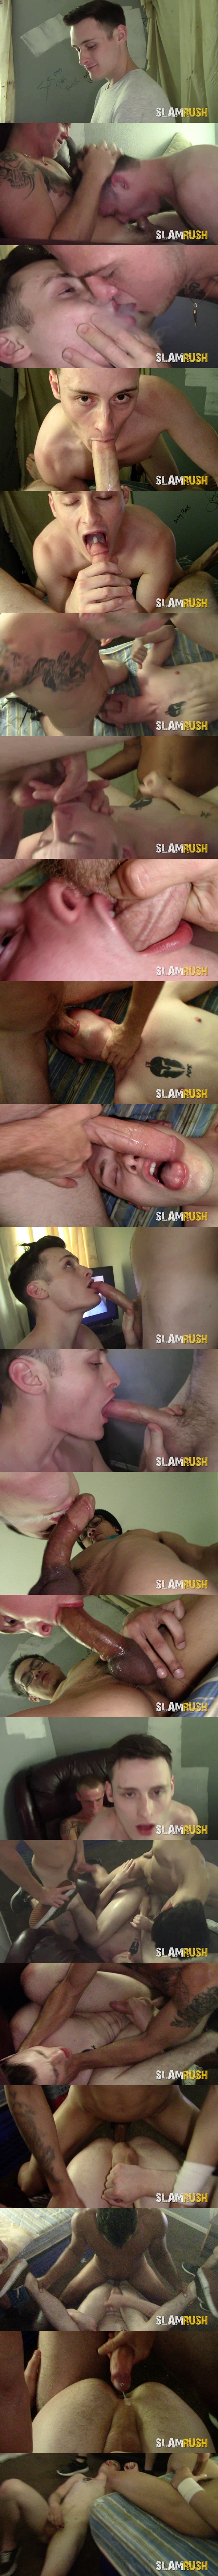 Tony Hawg, Tony Romero and an unknown street fucker gangbang and bareback broke slutty bitch Josh Cannon until Josh takes several loads in his both holes in Sloppy Slam at Slamrush 01